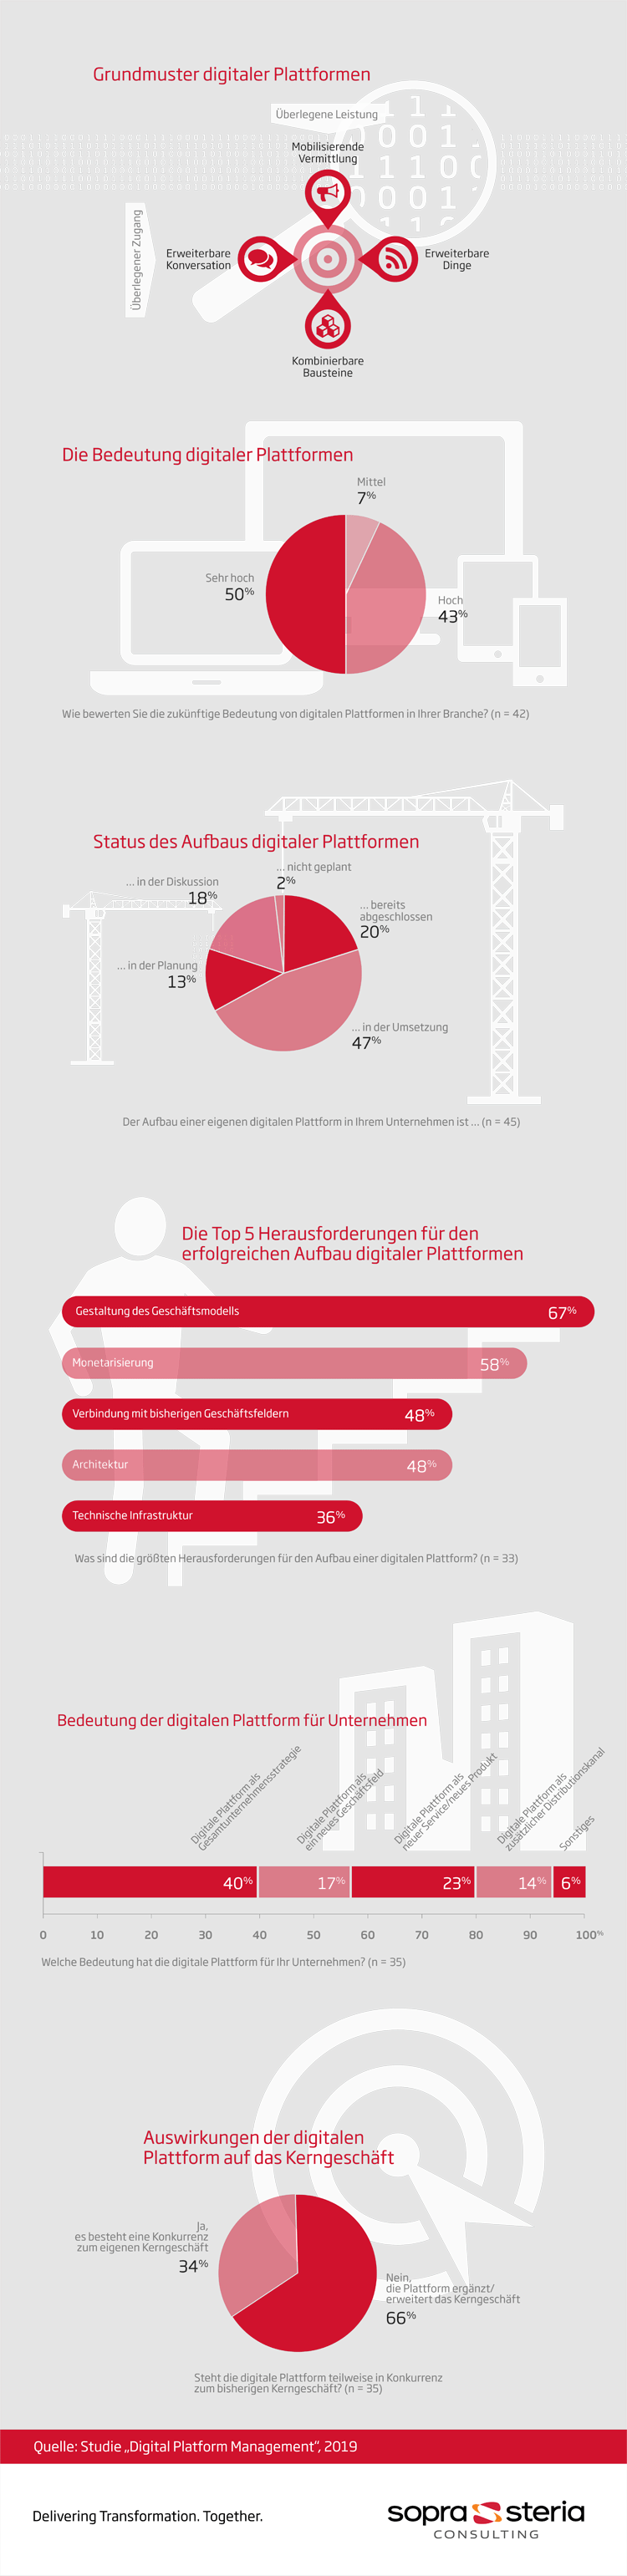 Infografik: Herausforderung durch Digitales Plattformmanagement